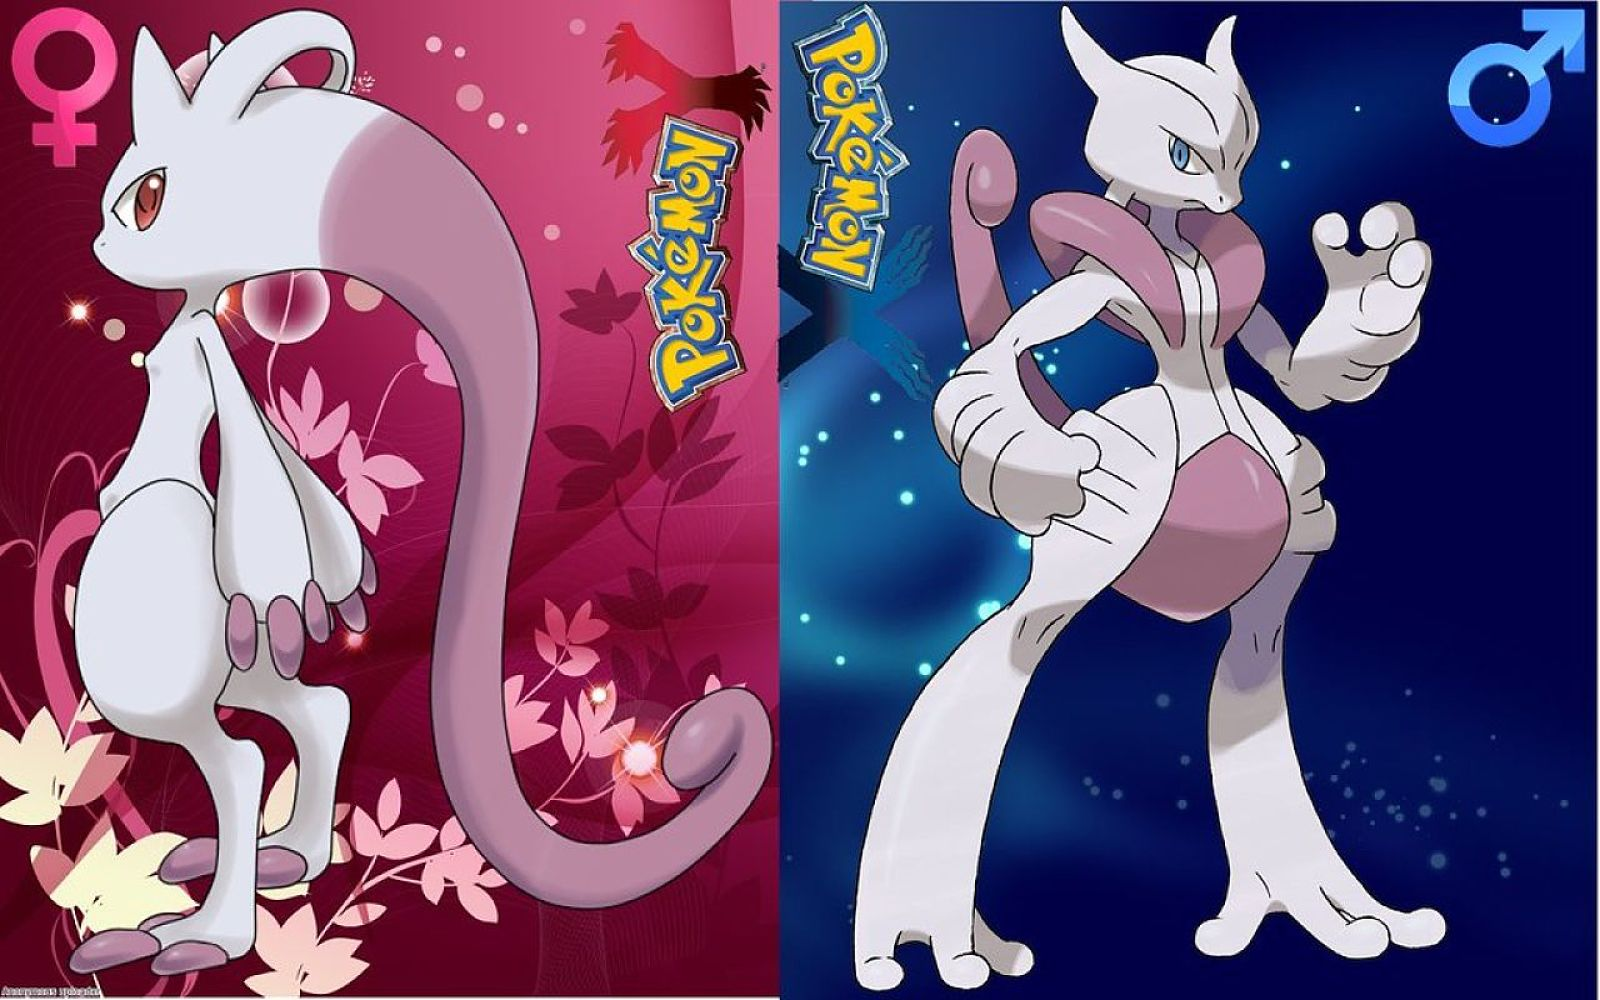 Mewtwo Gender Idea, critiques? by zaneGrimm430 on DeviantArt